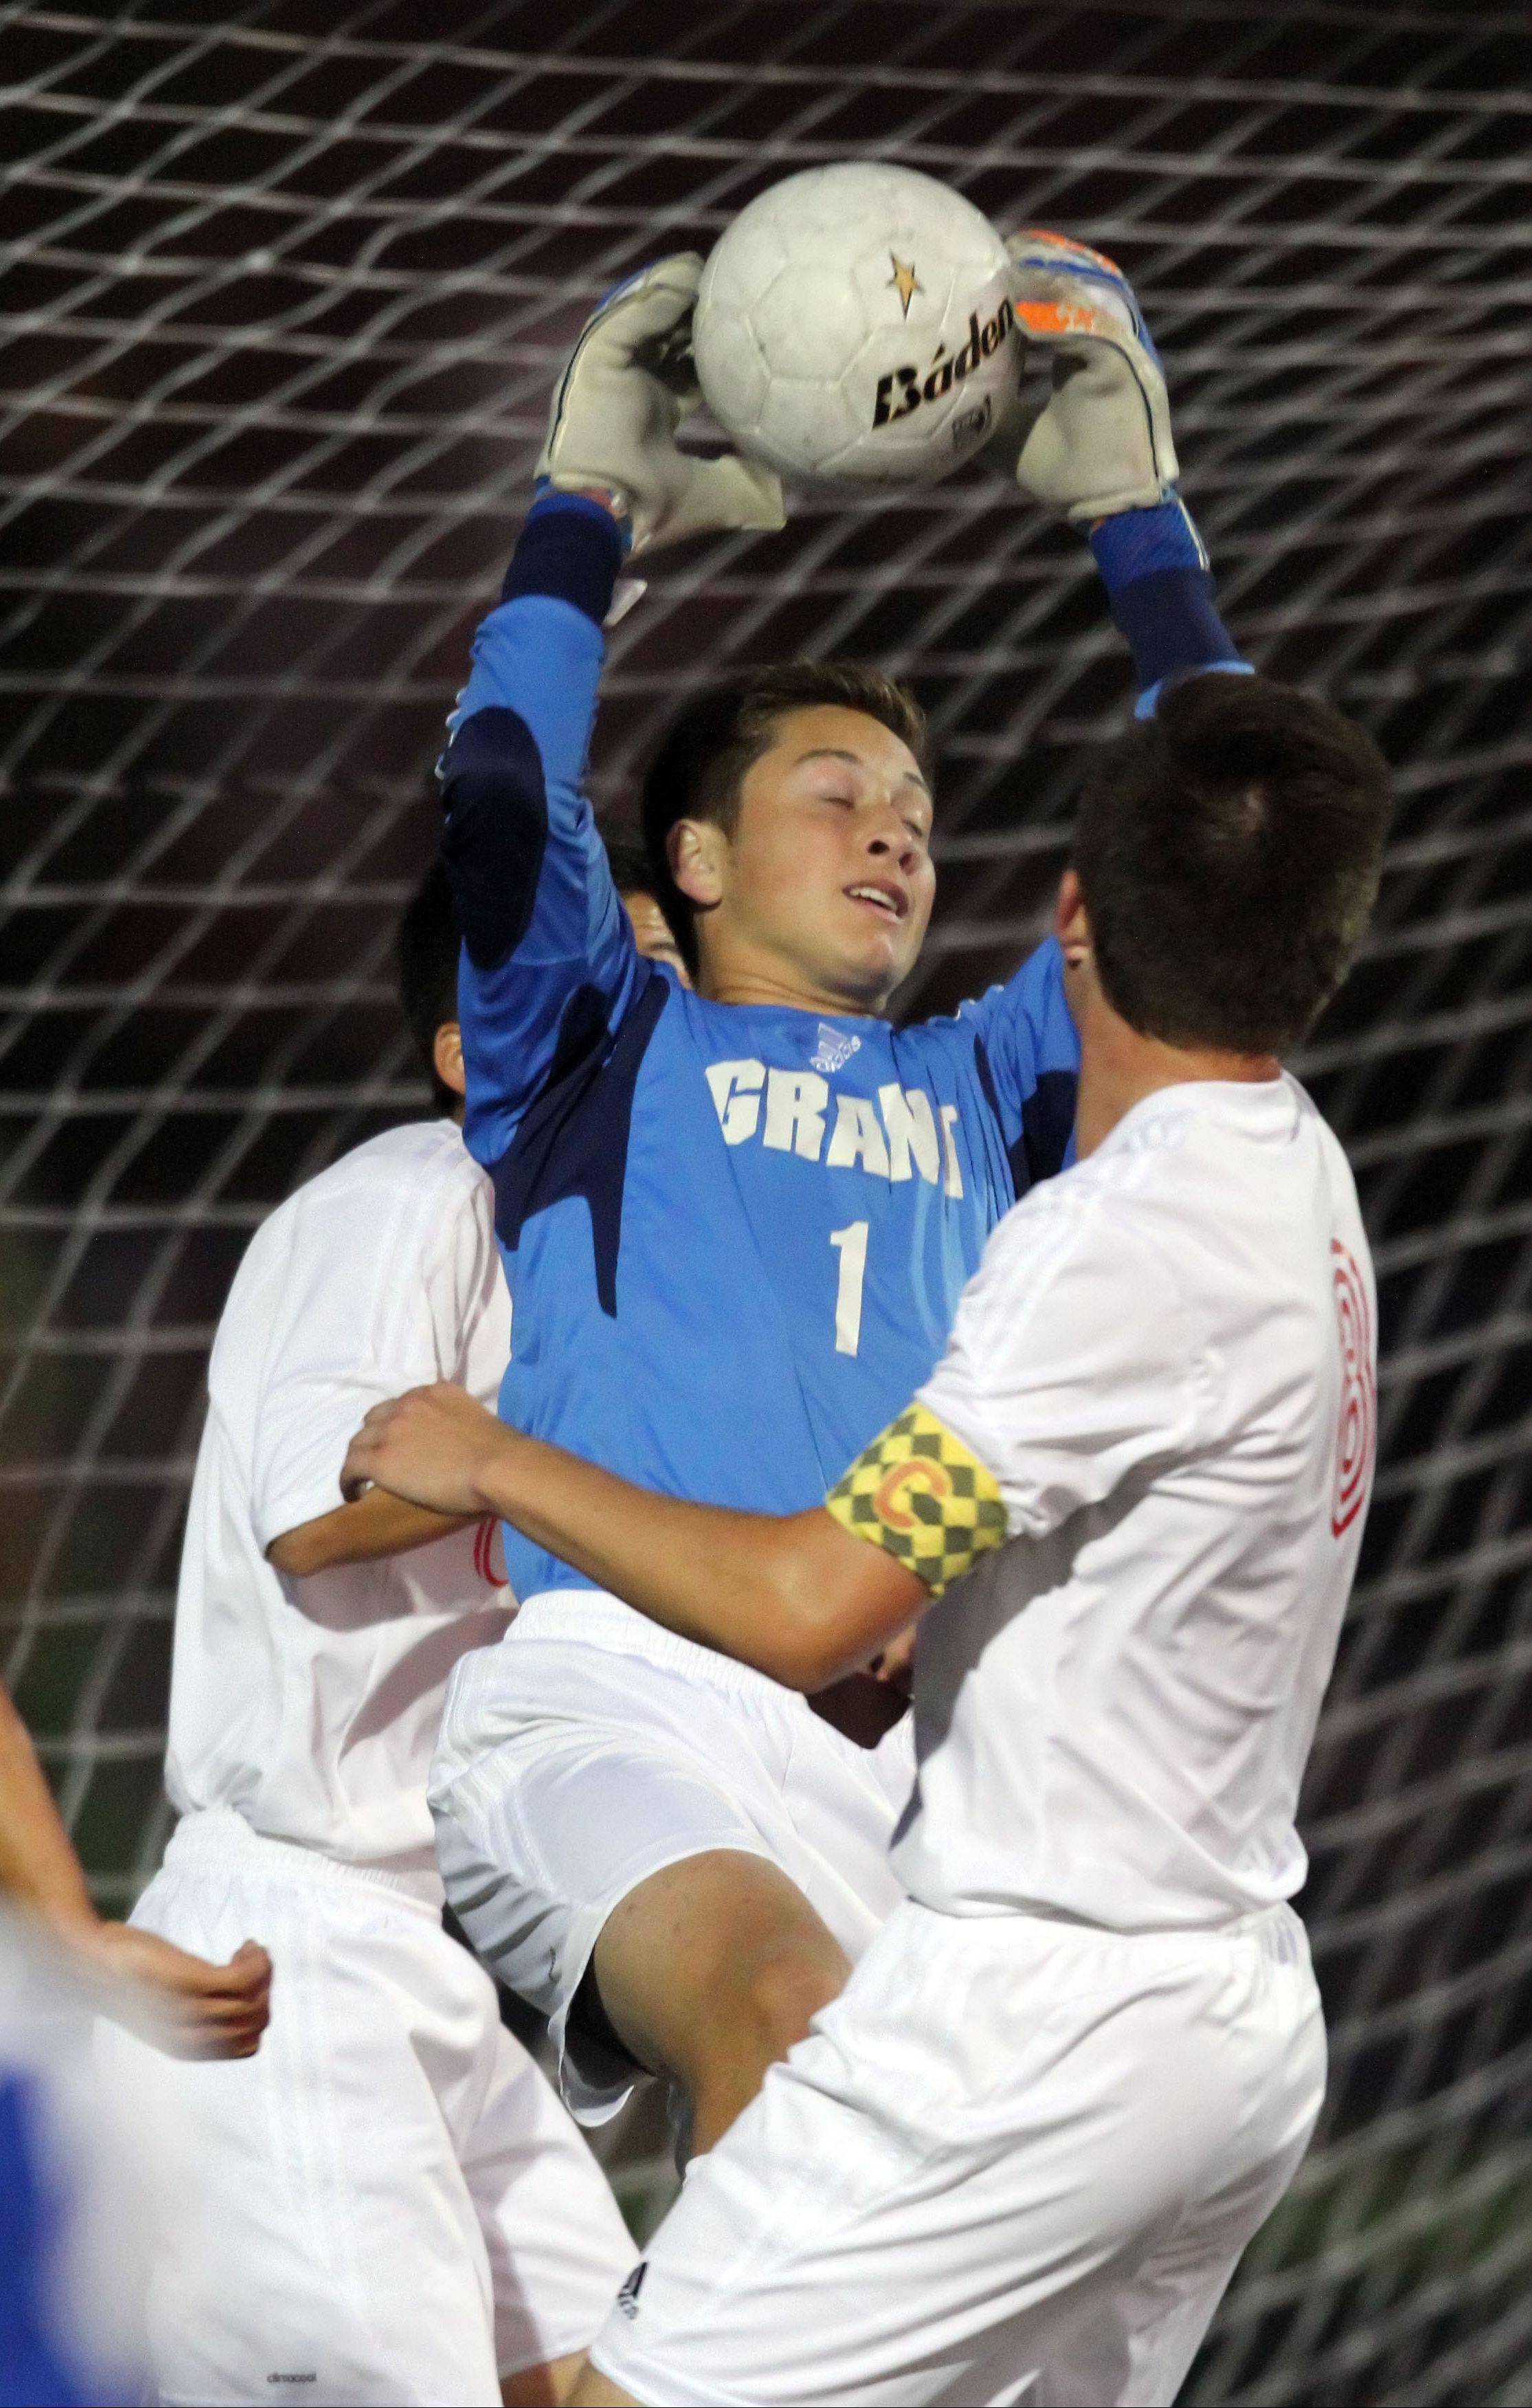 Grant goalie Nick Heidenthal makes a save against Lakes on Monday night at Grant.